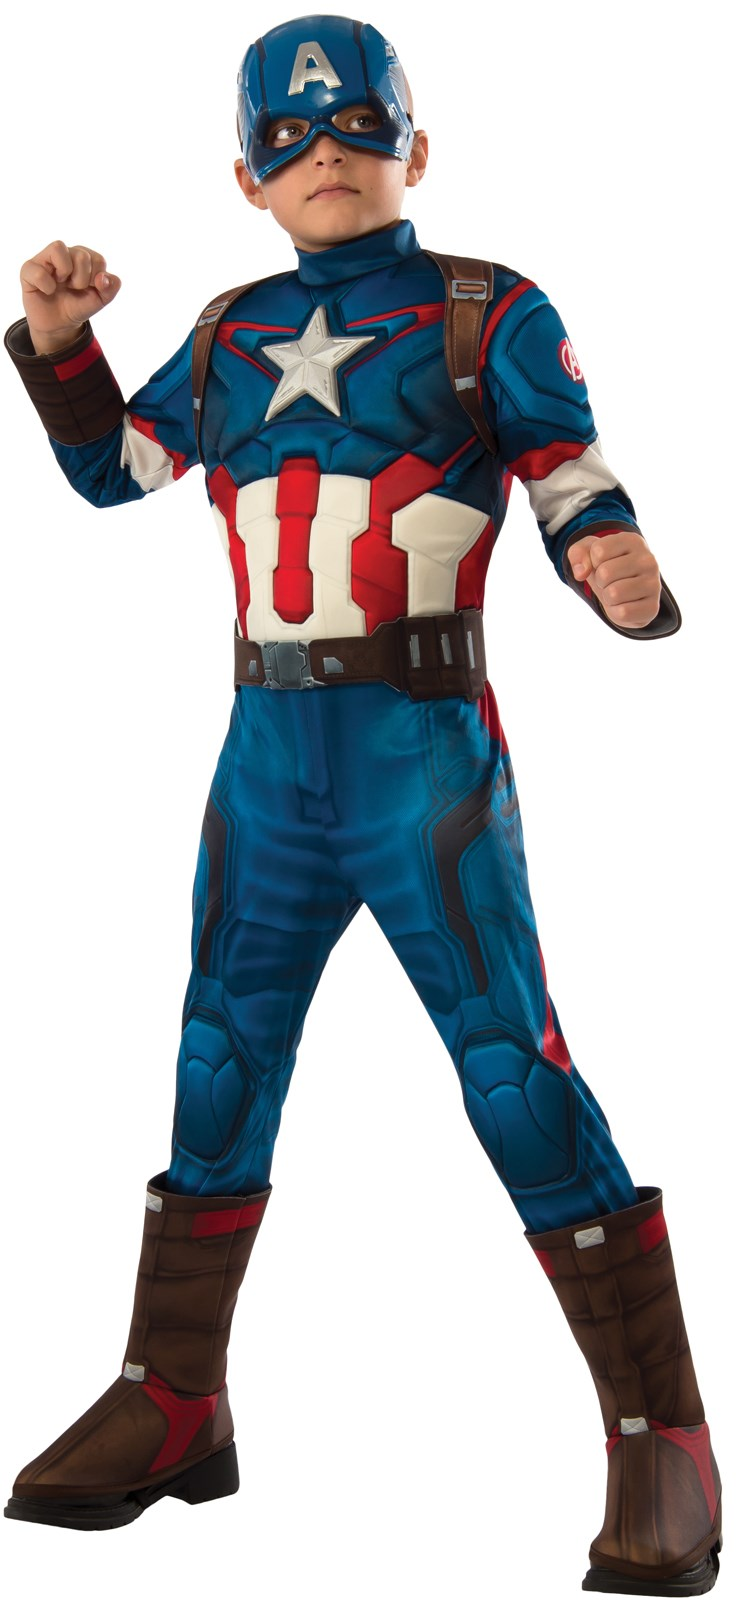 Rubie's Costume Captain America 3: Civil War Kids Value Costume, Small. by Rubie's. $ $ 29 99 Prime. FREE Shipping on eligible orders. out of 5 stars Manufacturer recommended age: 3 - 4 Years. Product Features Look for Captain America costumes in sizes and styles for the entire family.